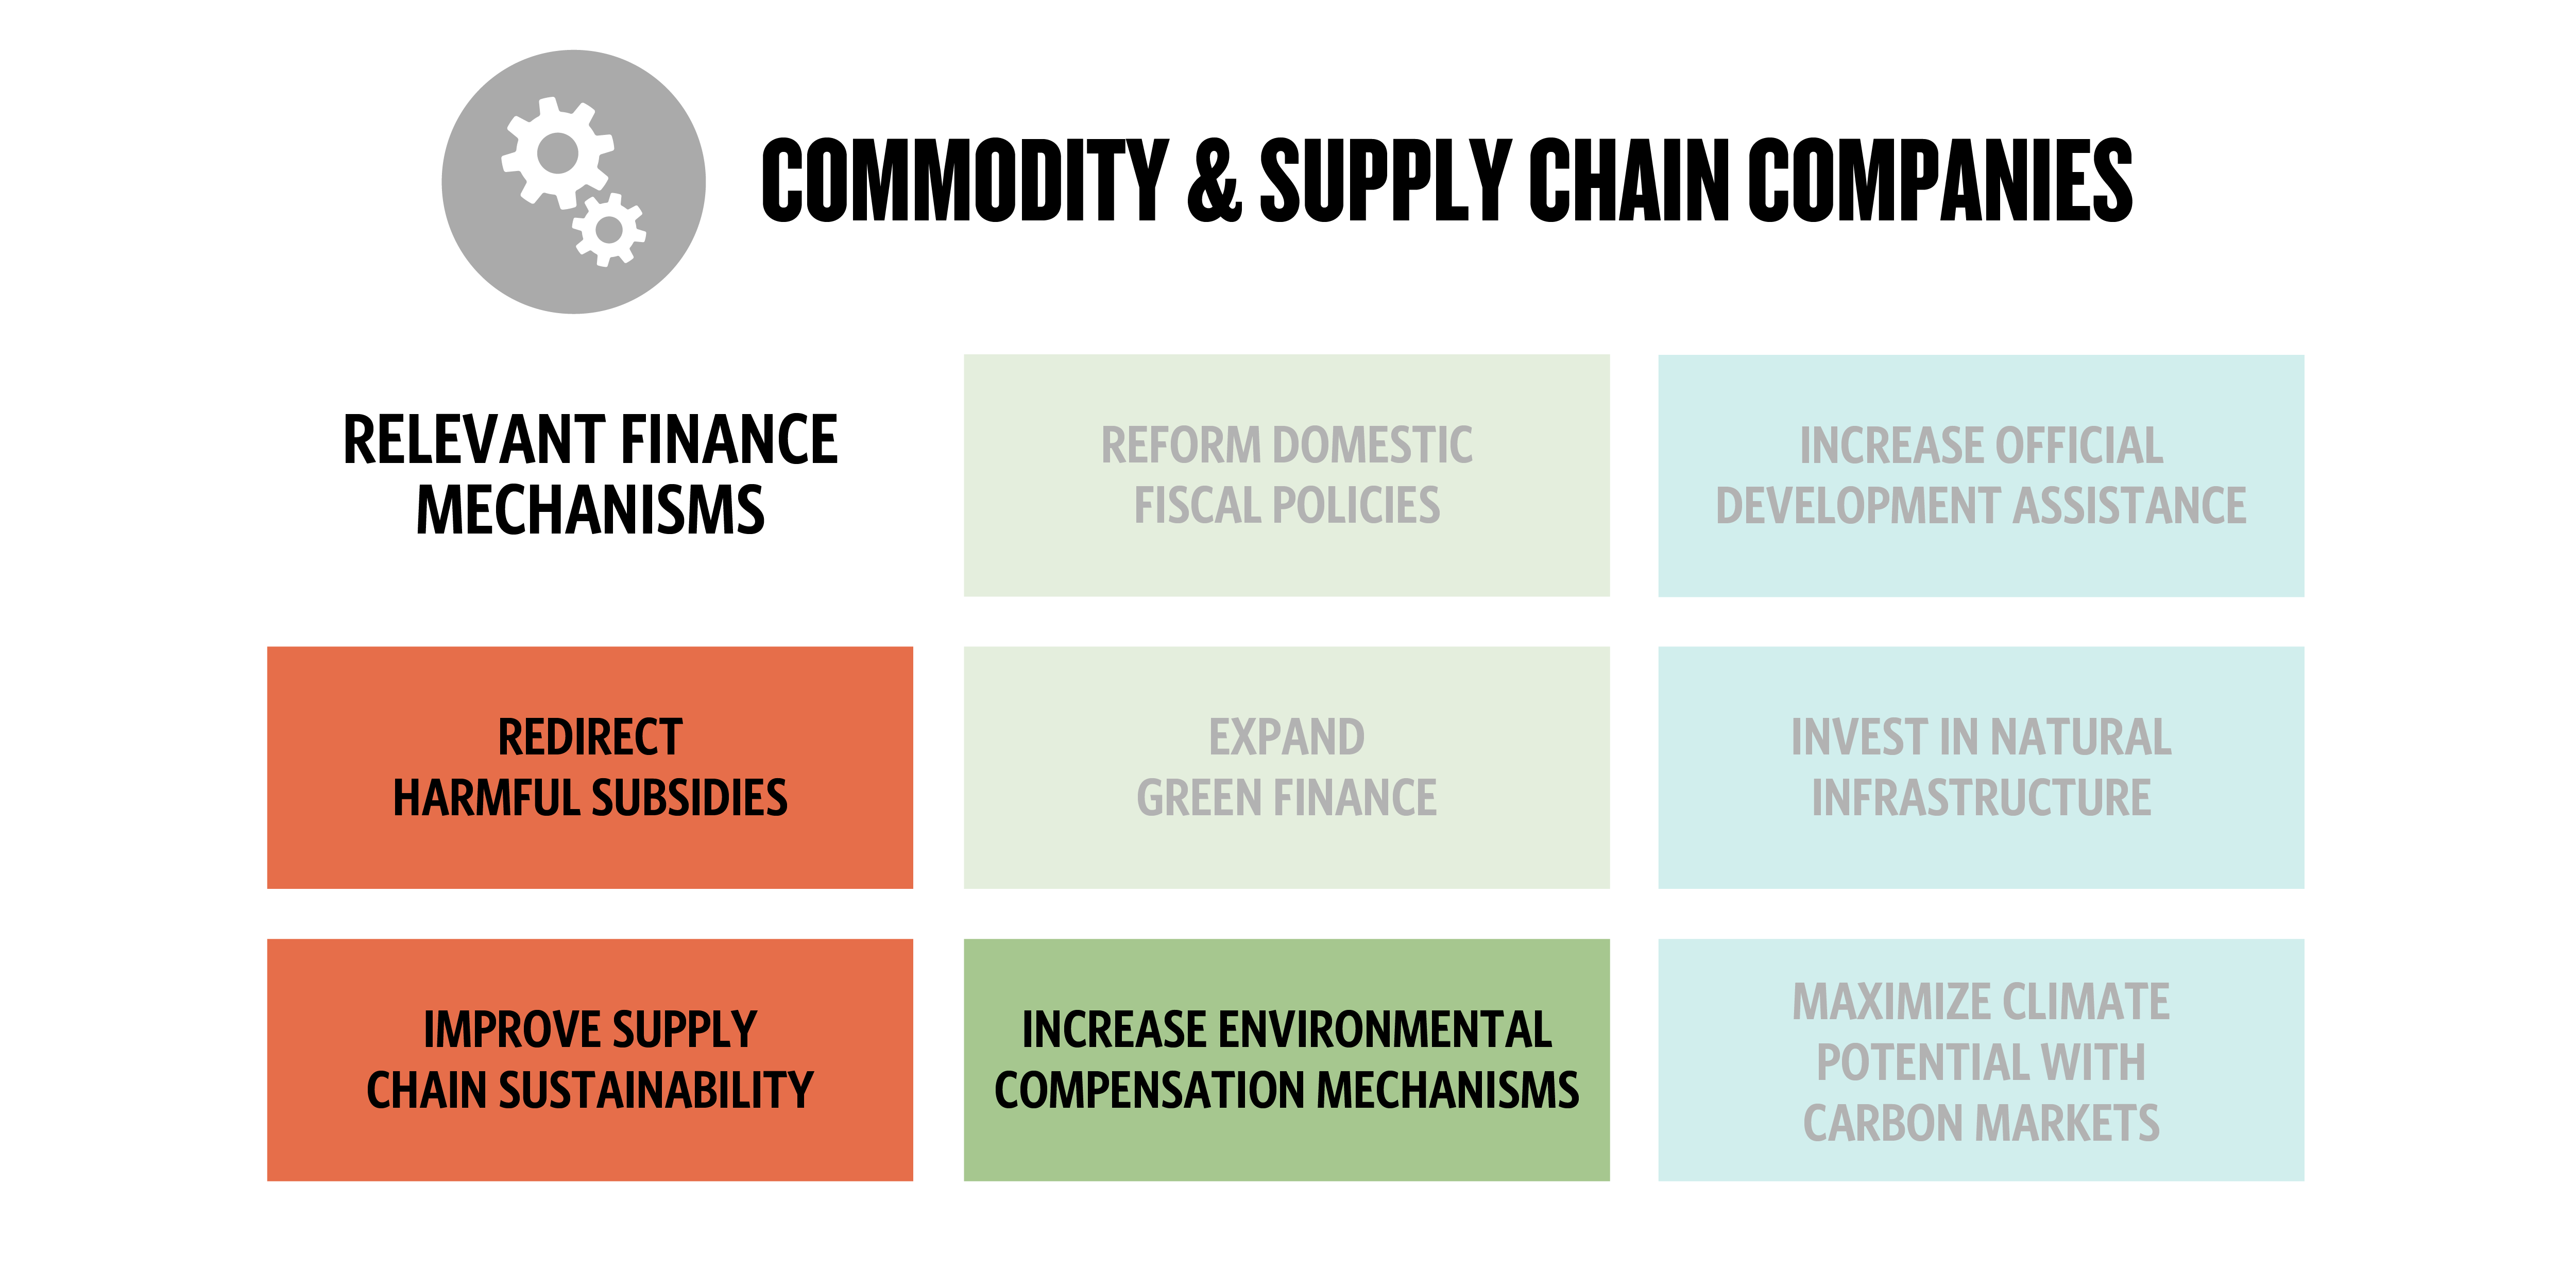 eight boxes with three highlighted to represent which financial mechanisms are relevant to commodity and supply chain companies